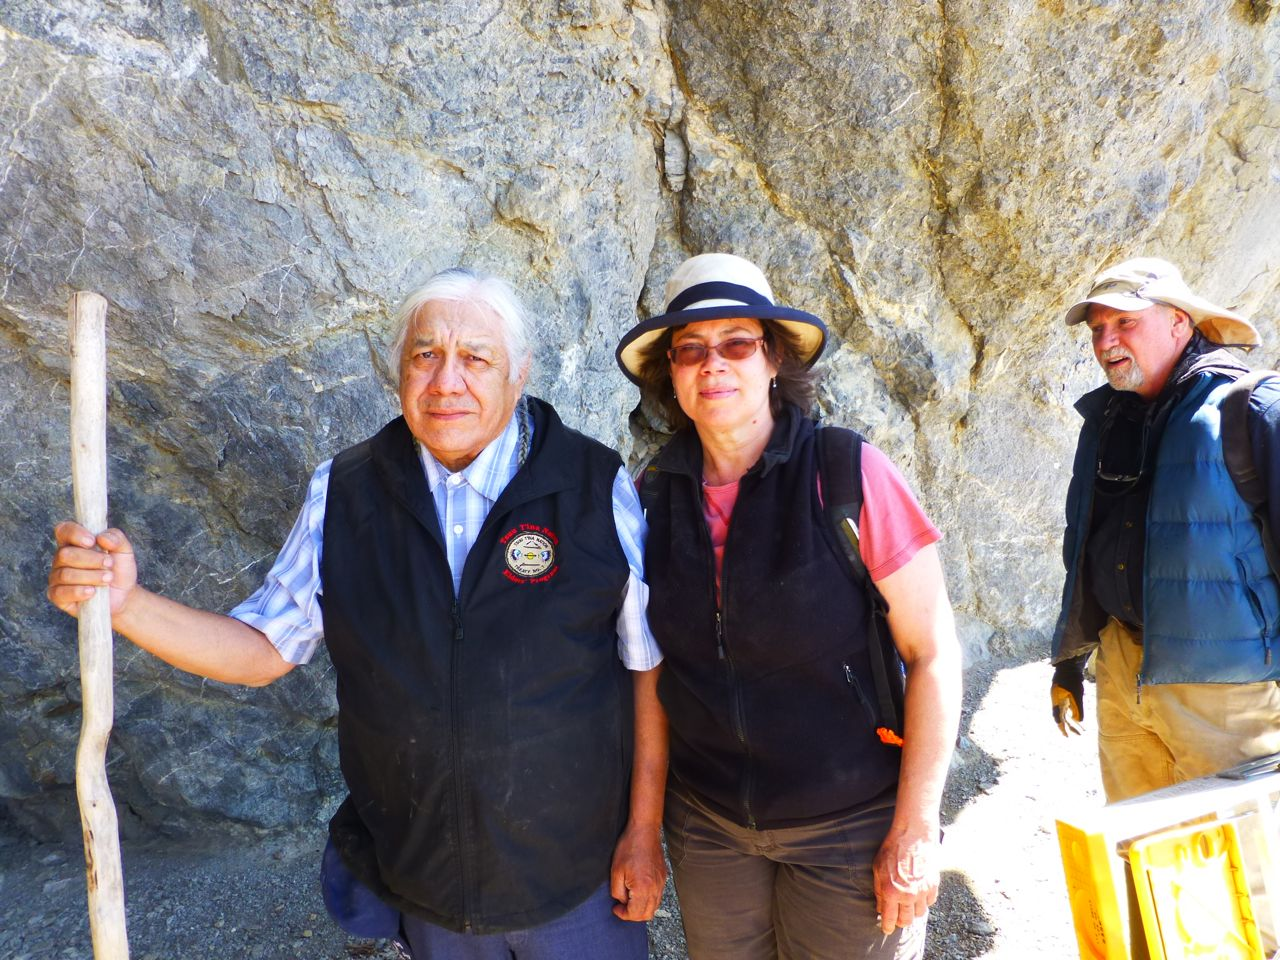 Elder Bruce Starlight, linguist Sally Rice and archaeologist Jack Ives at the Promontory Cave